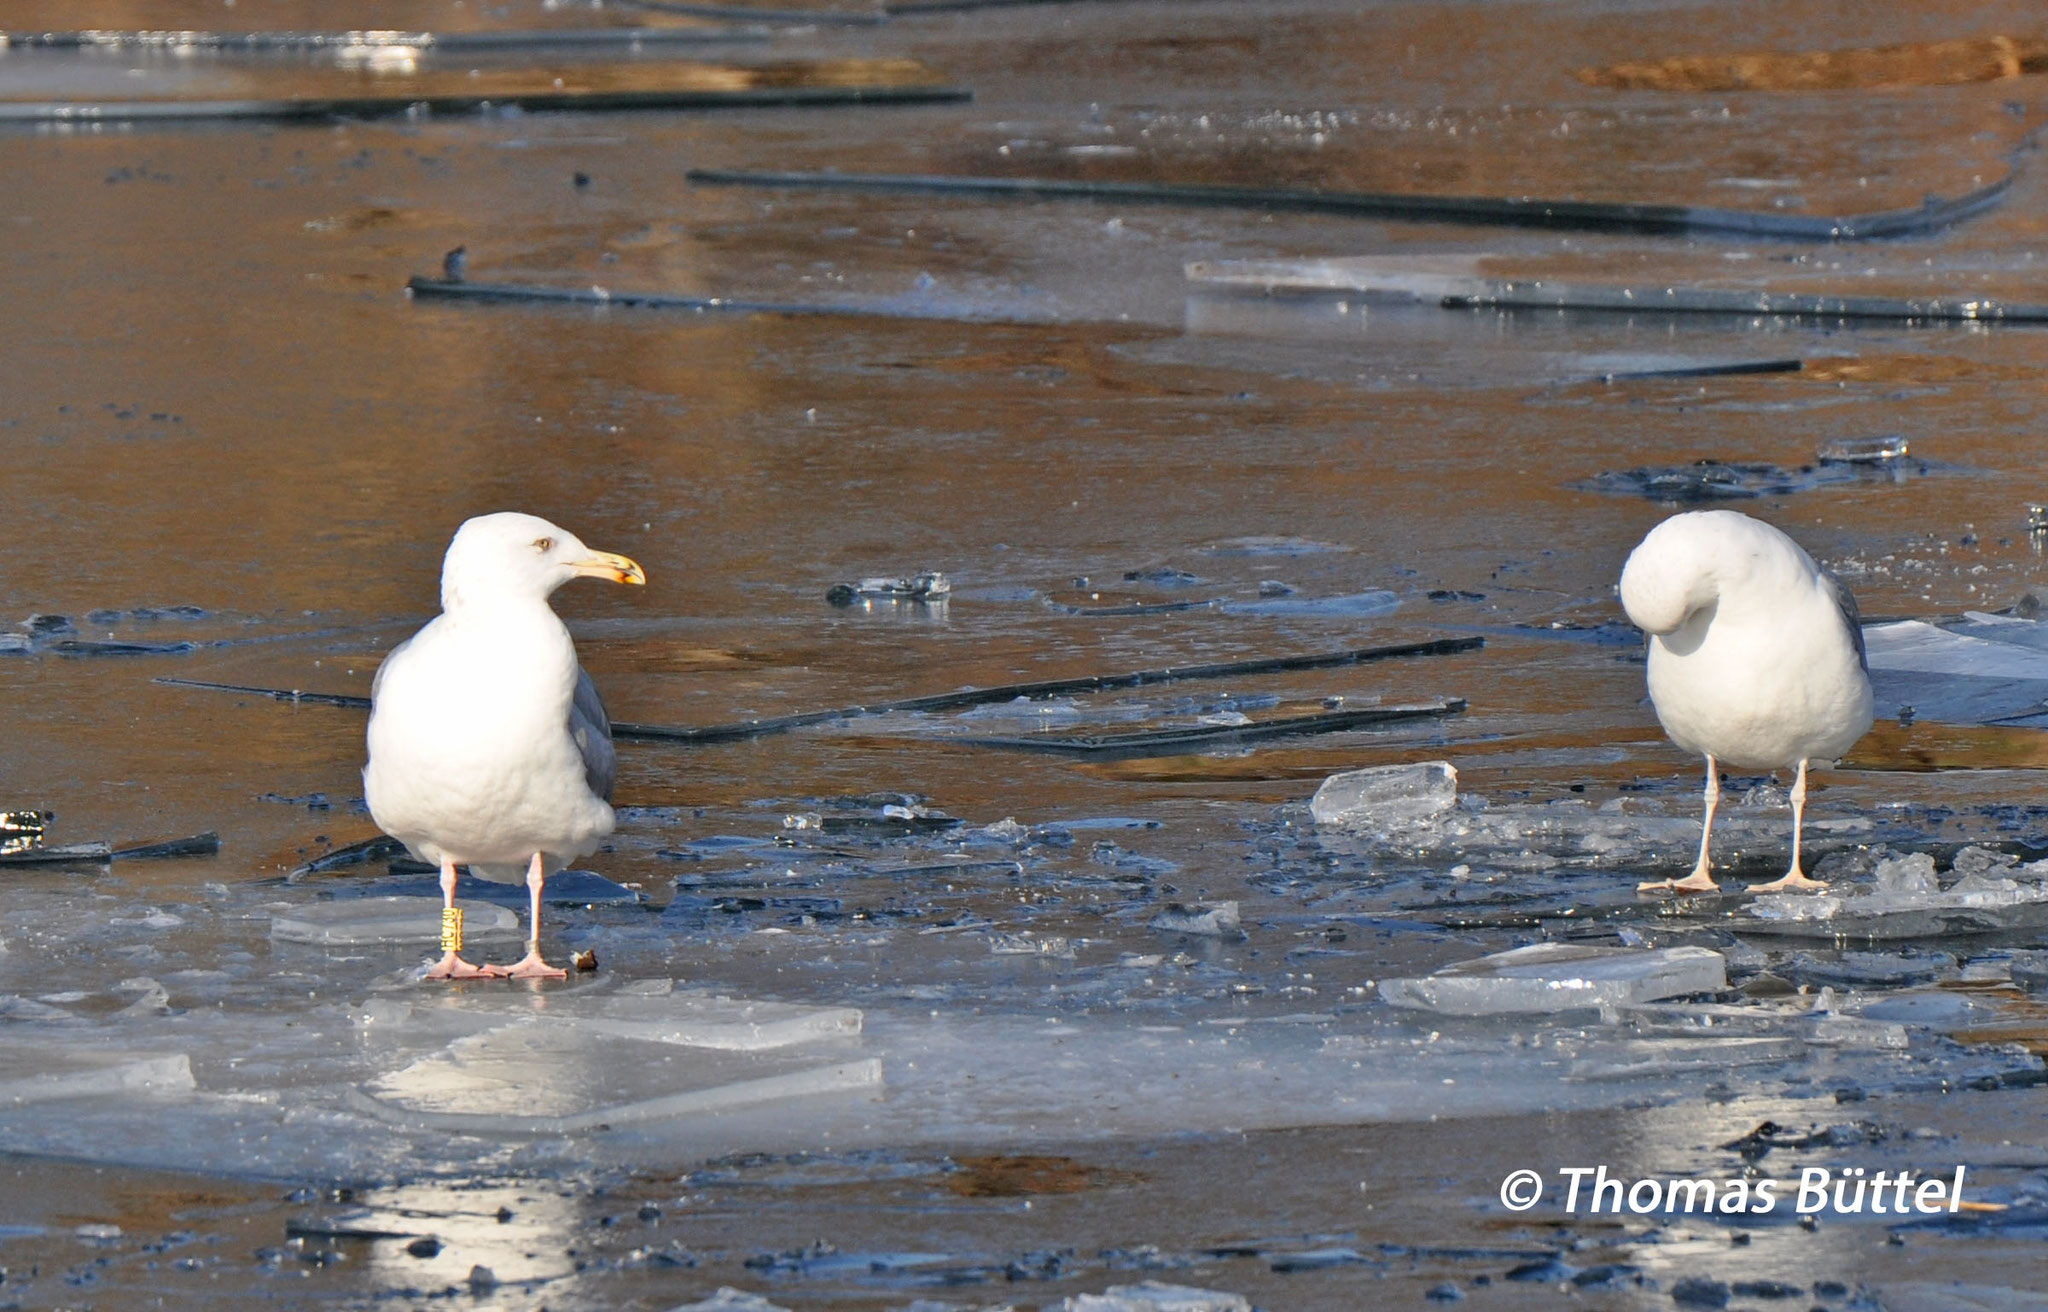 """Herring Gull"" (left) and Caspian Gull (right)"